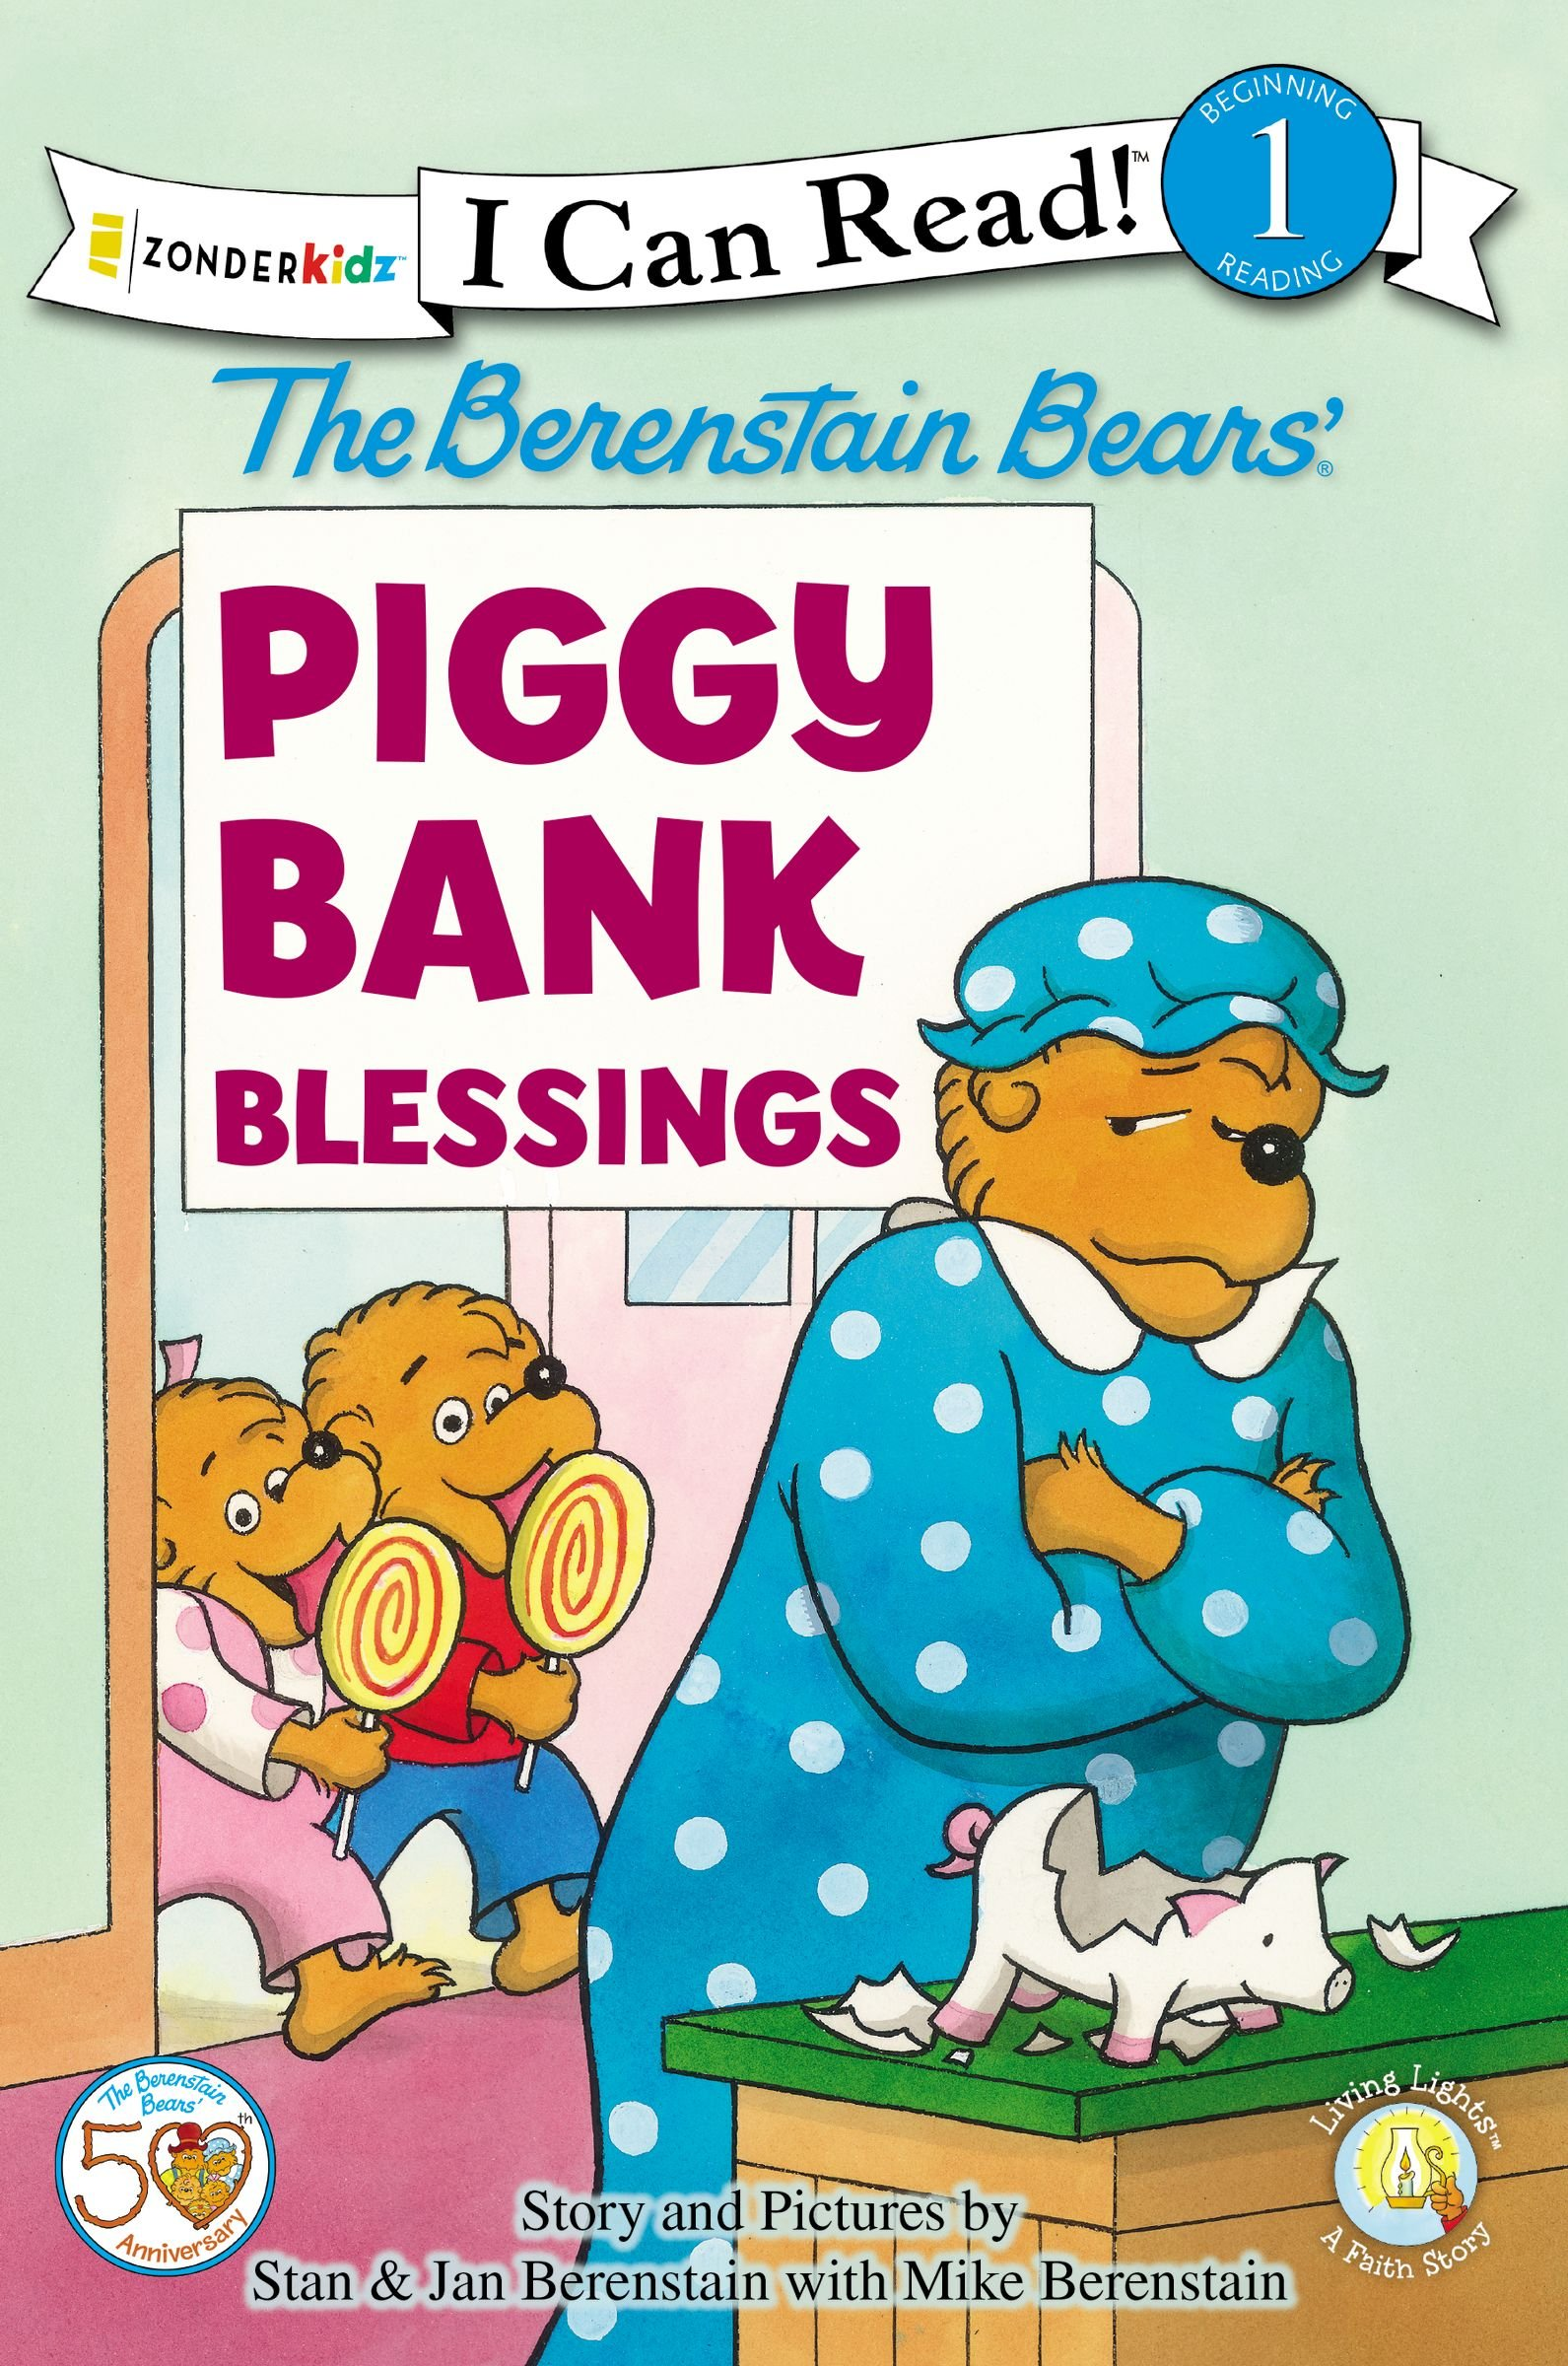 The Berenstain Bears Piggy Bank Blessings (I Can Read!/Living Lights)